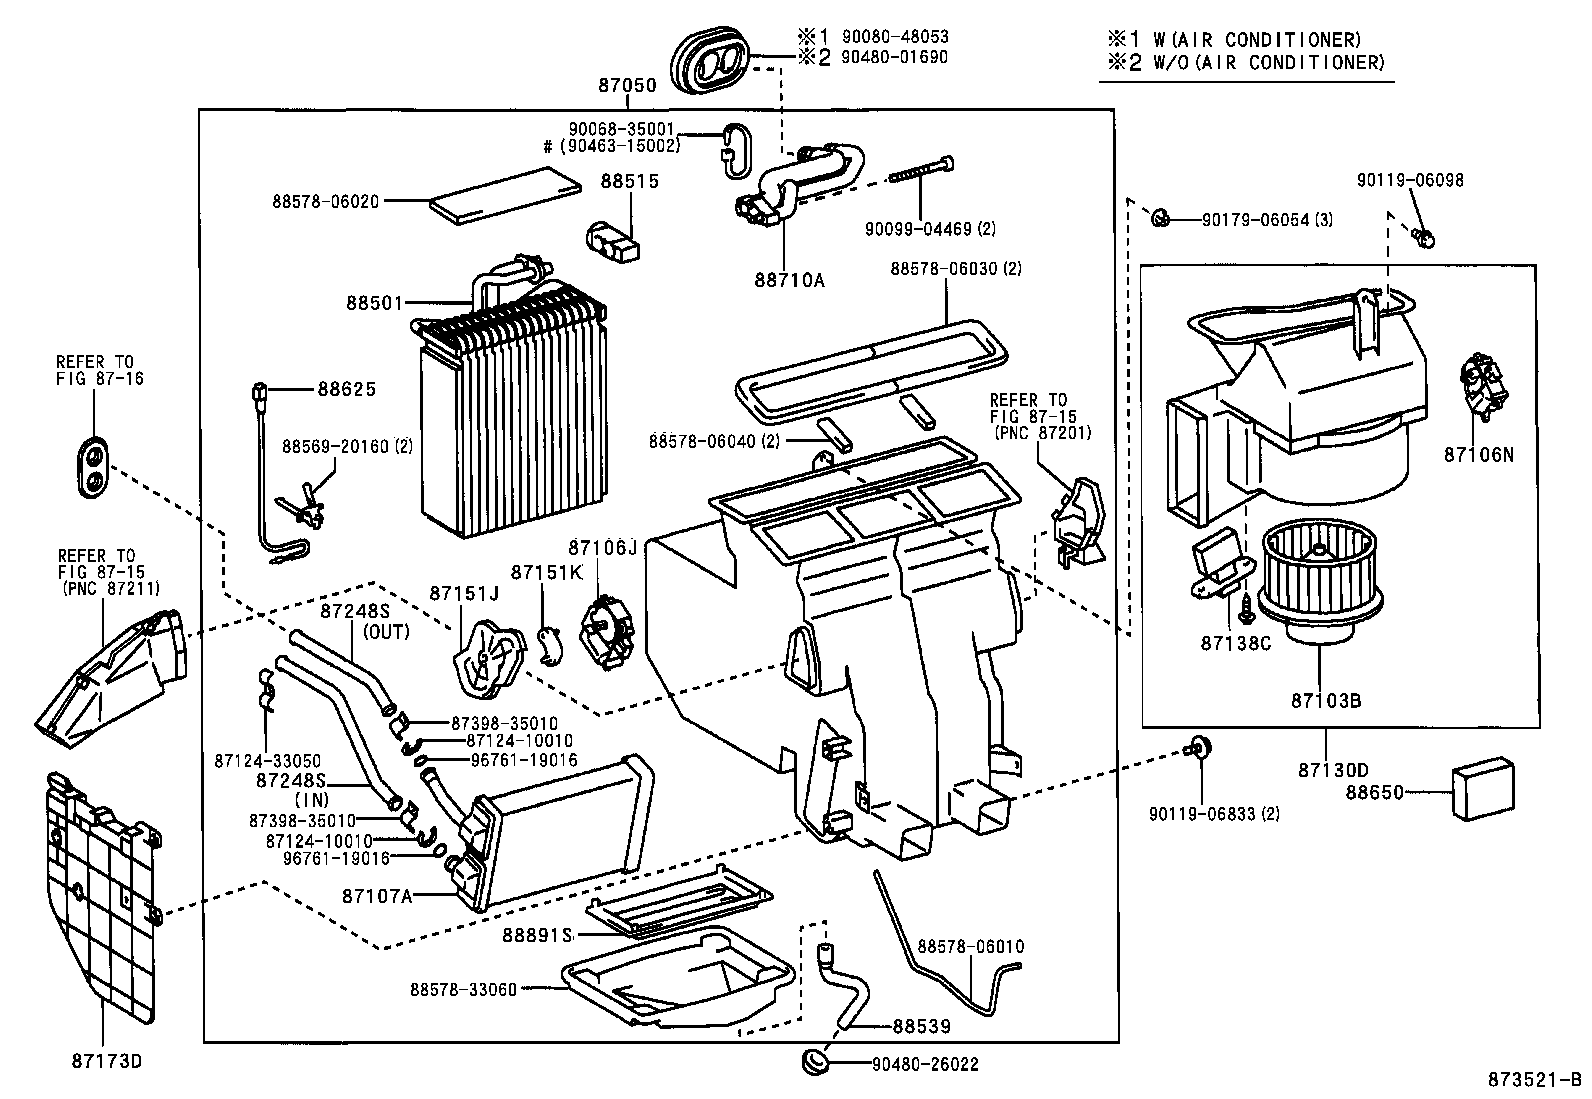 Toyota Diagrams : Toyota Corolla Front Suspension Diagram